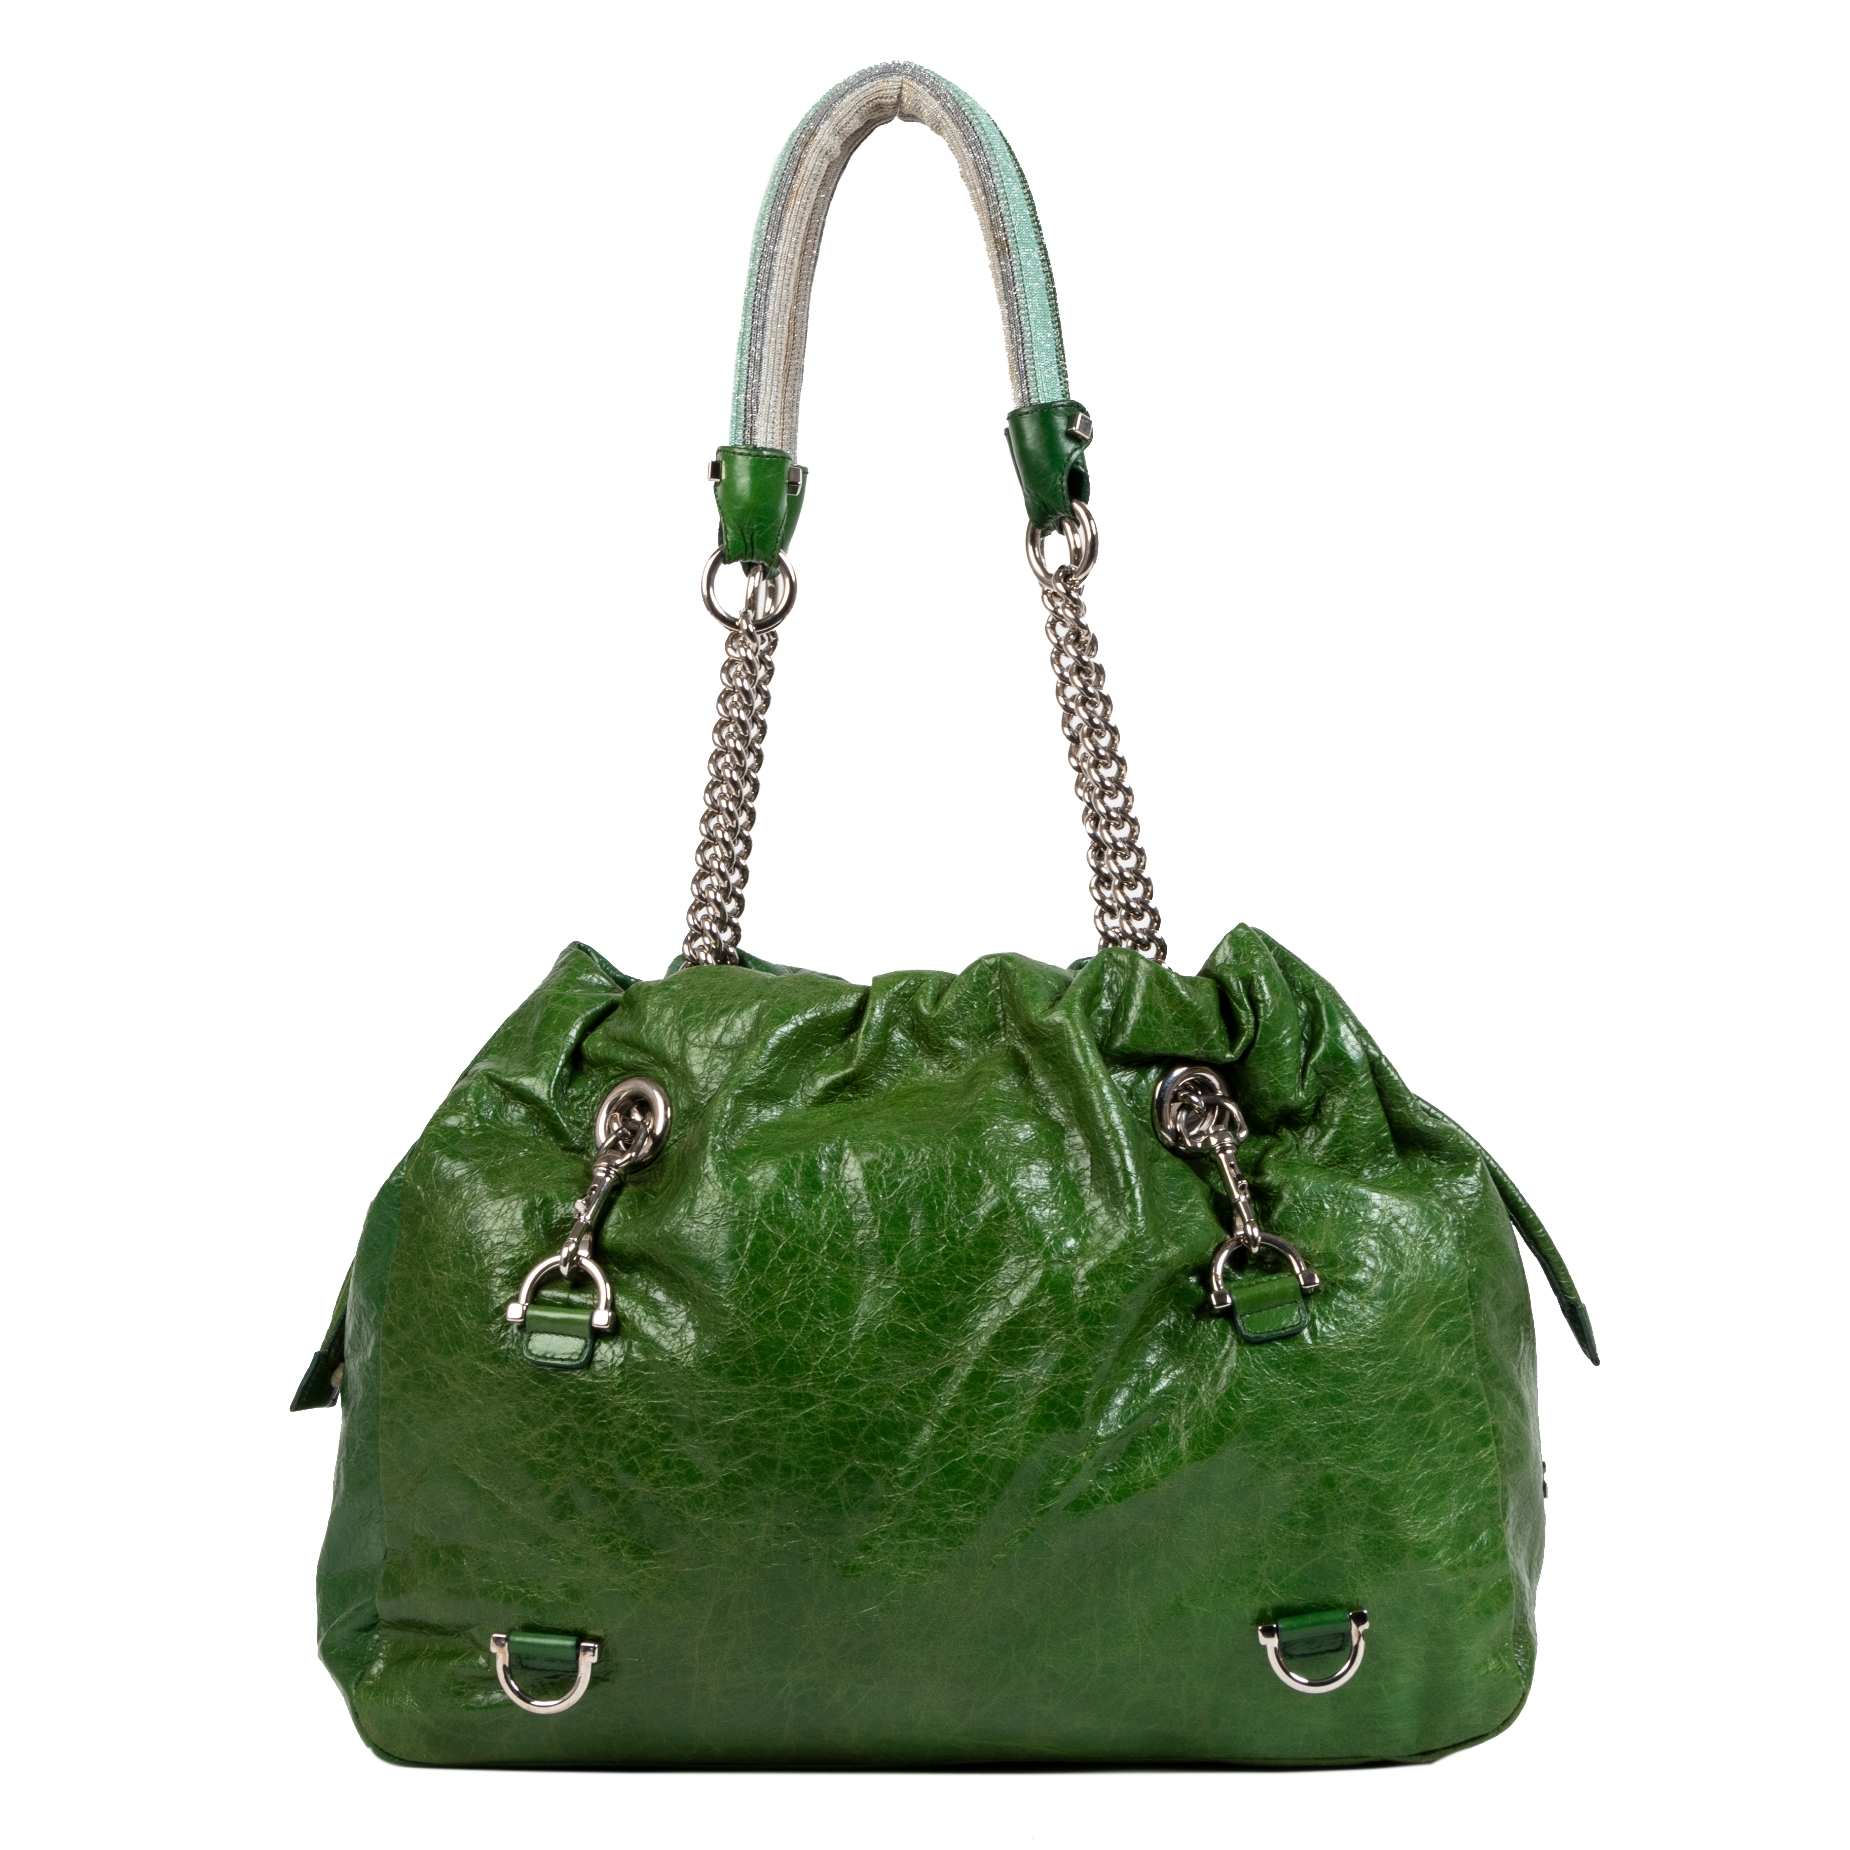 Missoni Green Leather Shoulder Tote Bag for the best price at Labellov online